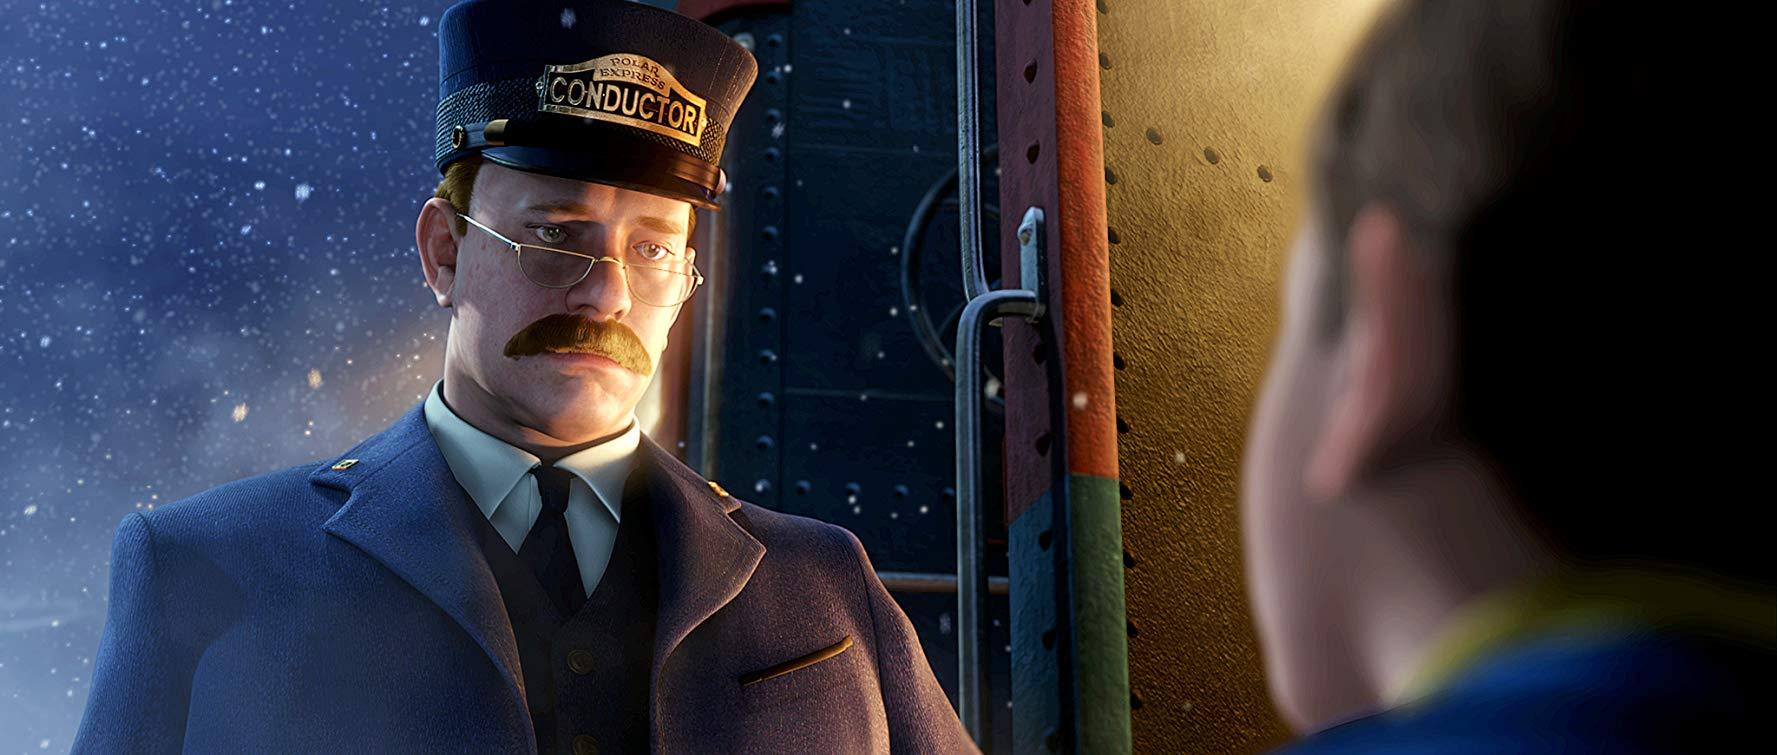 The Conductor (Tom Hanks) goes to click the Hero Boy's ticket in The Polar Express (2004)